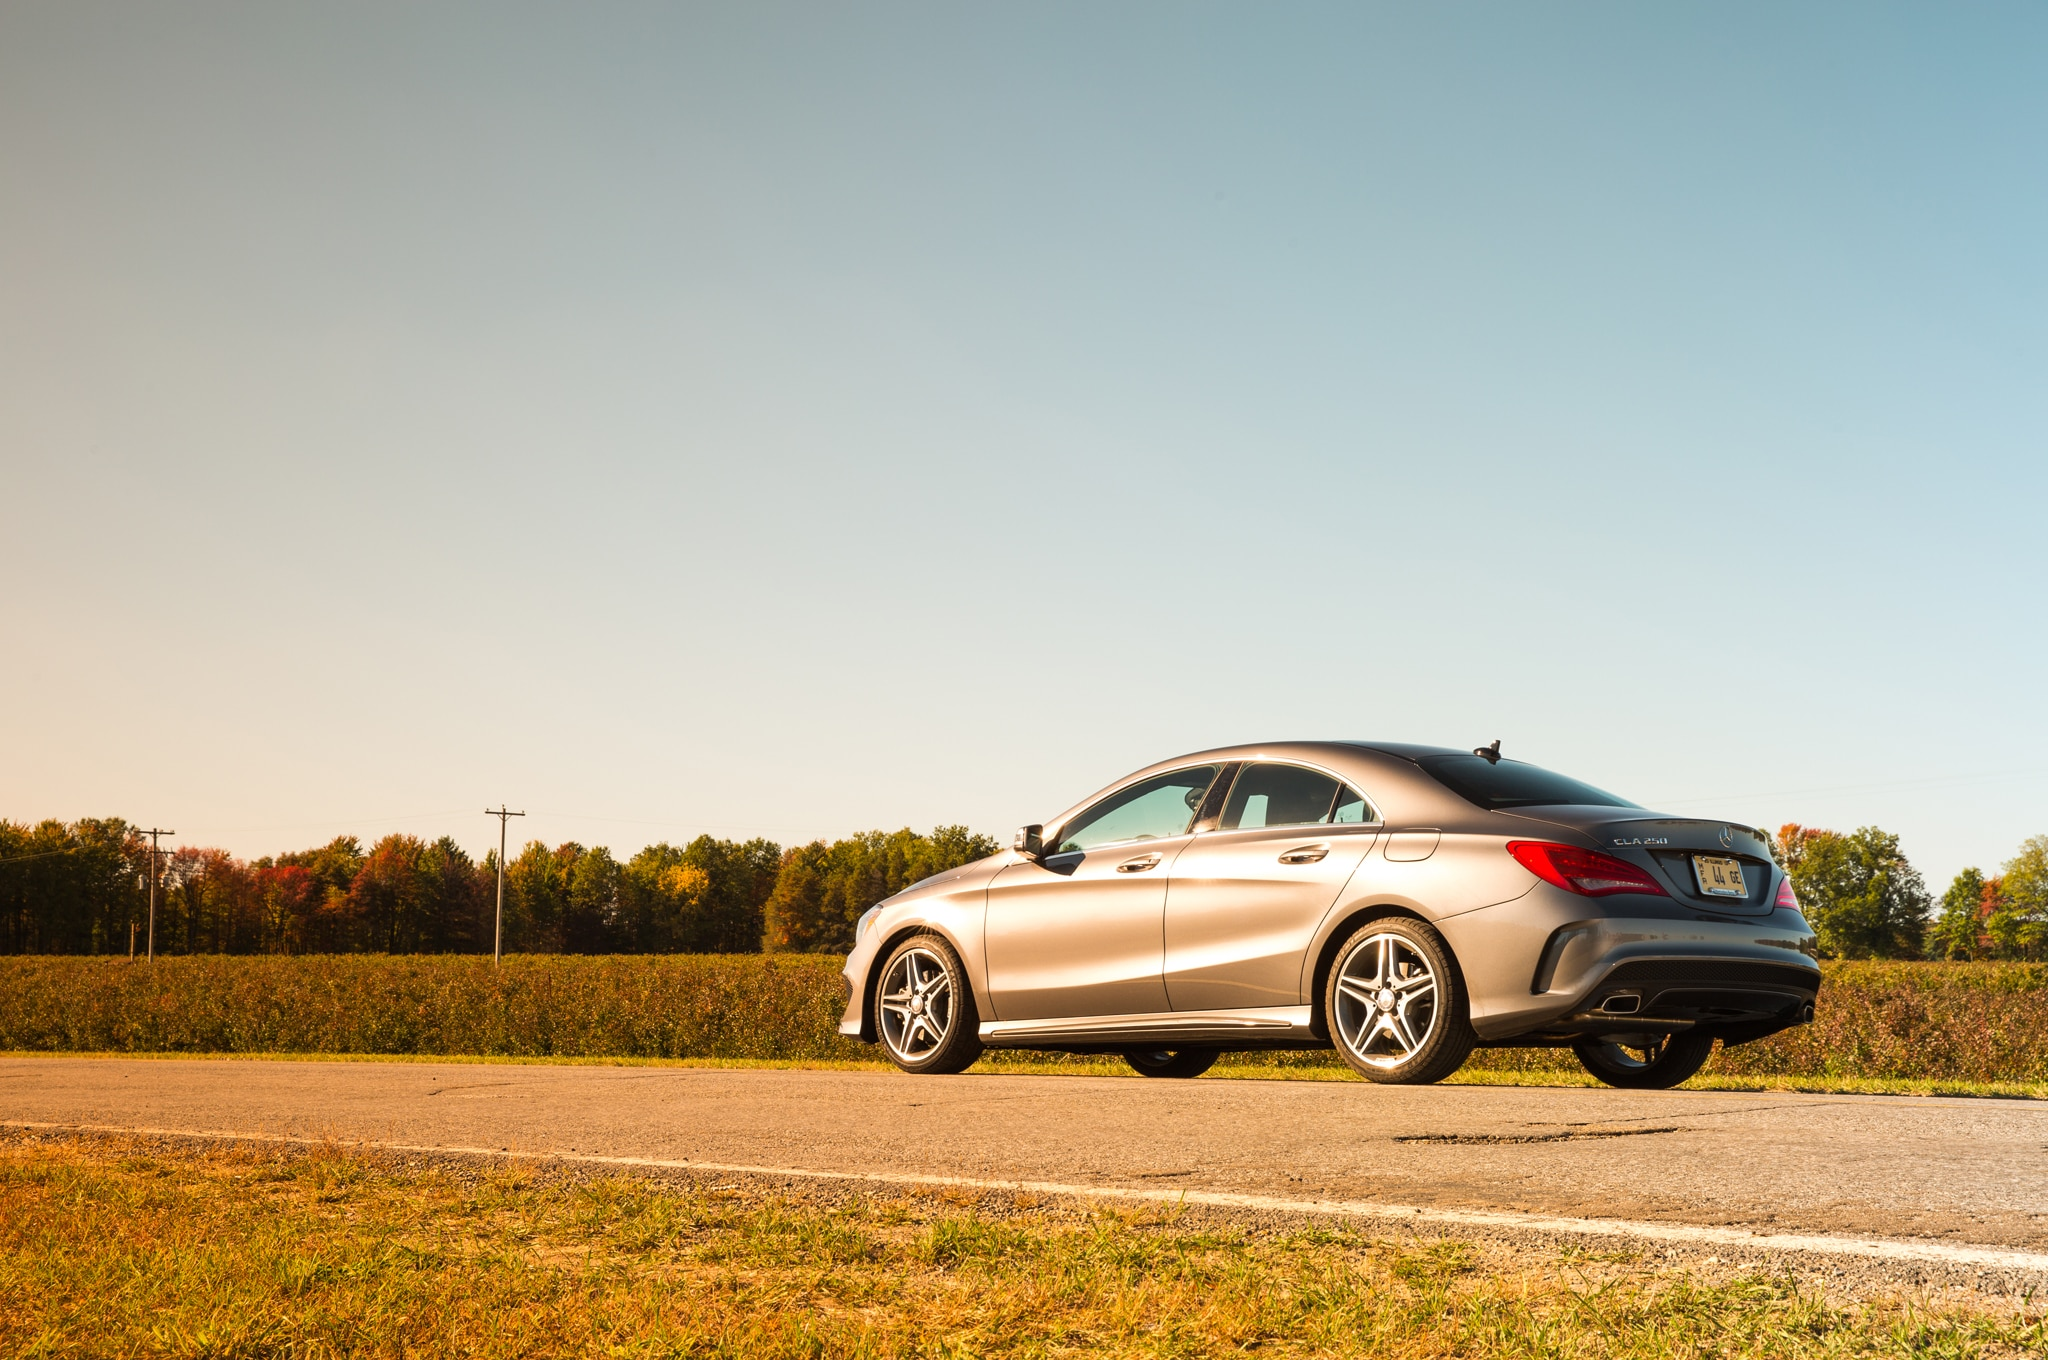 2014 mercedes benz cla250 2014 automobile of the year for 2014 mercedes benz cla250